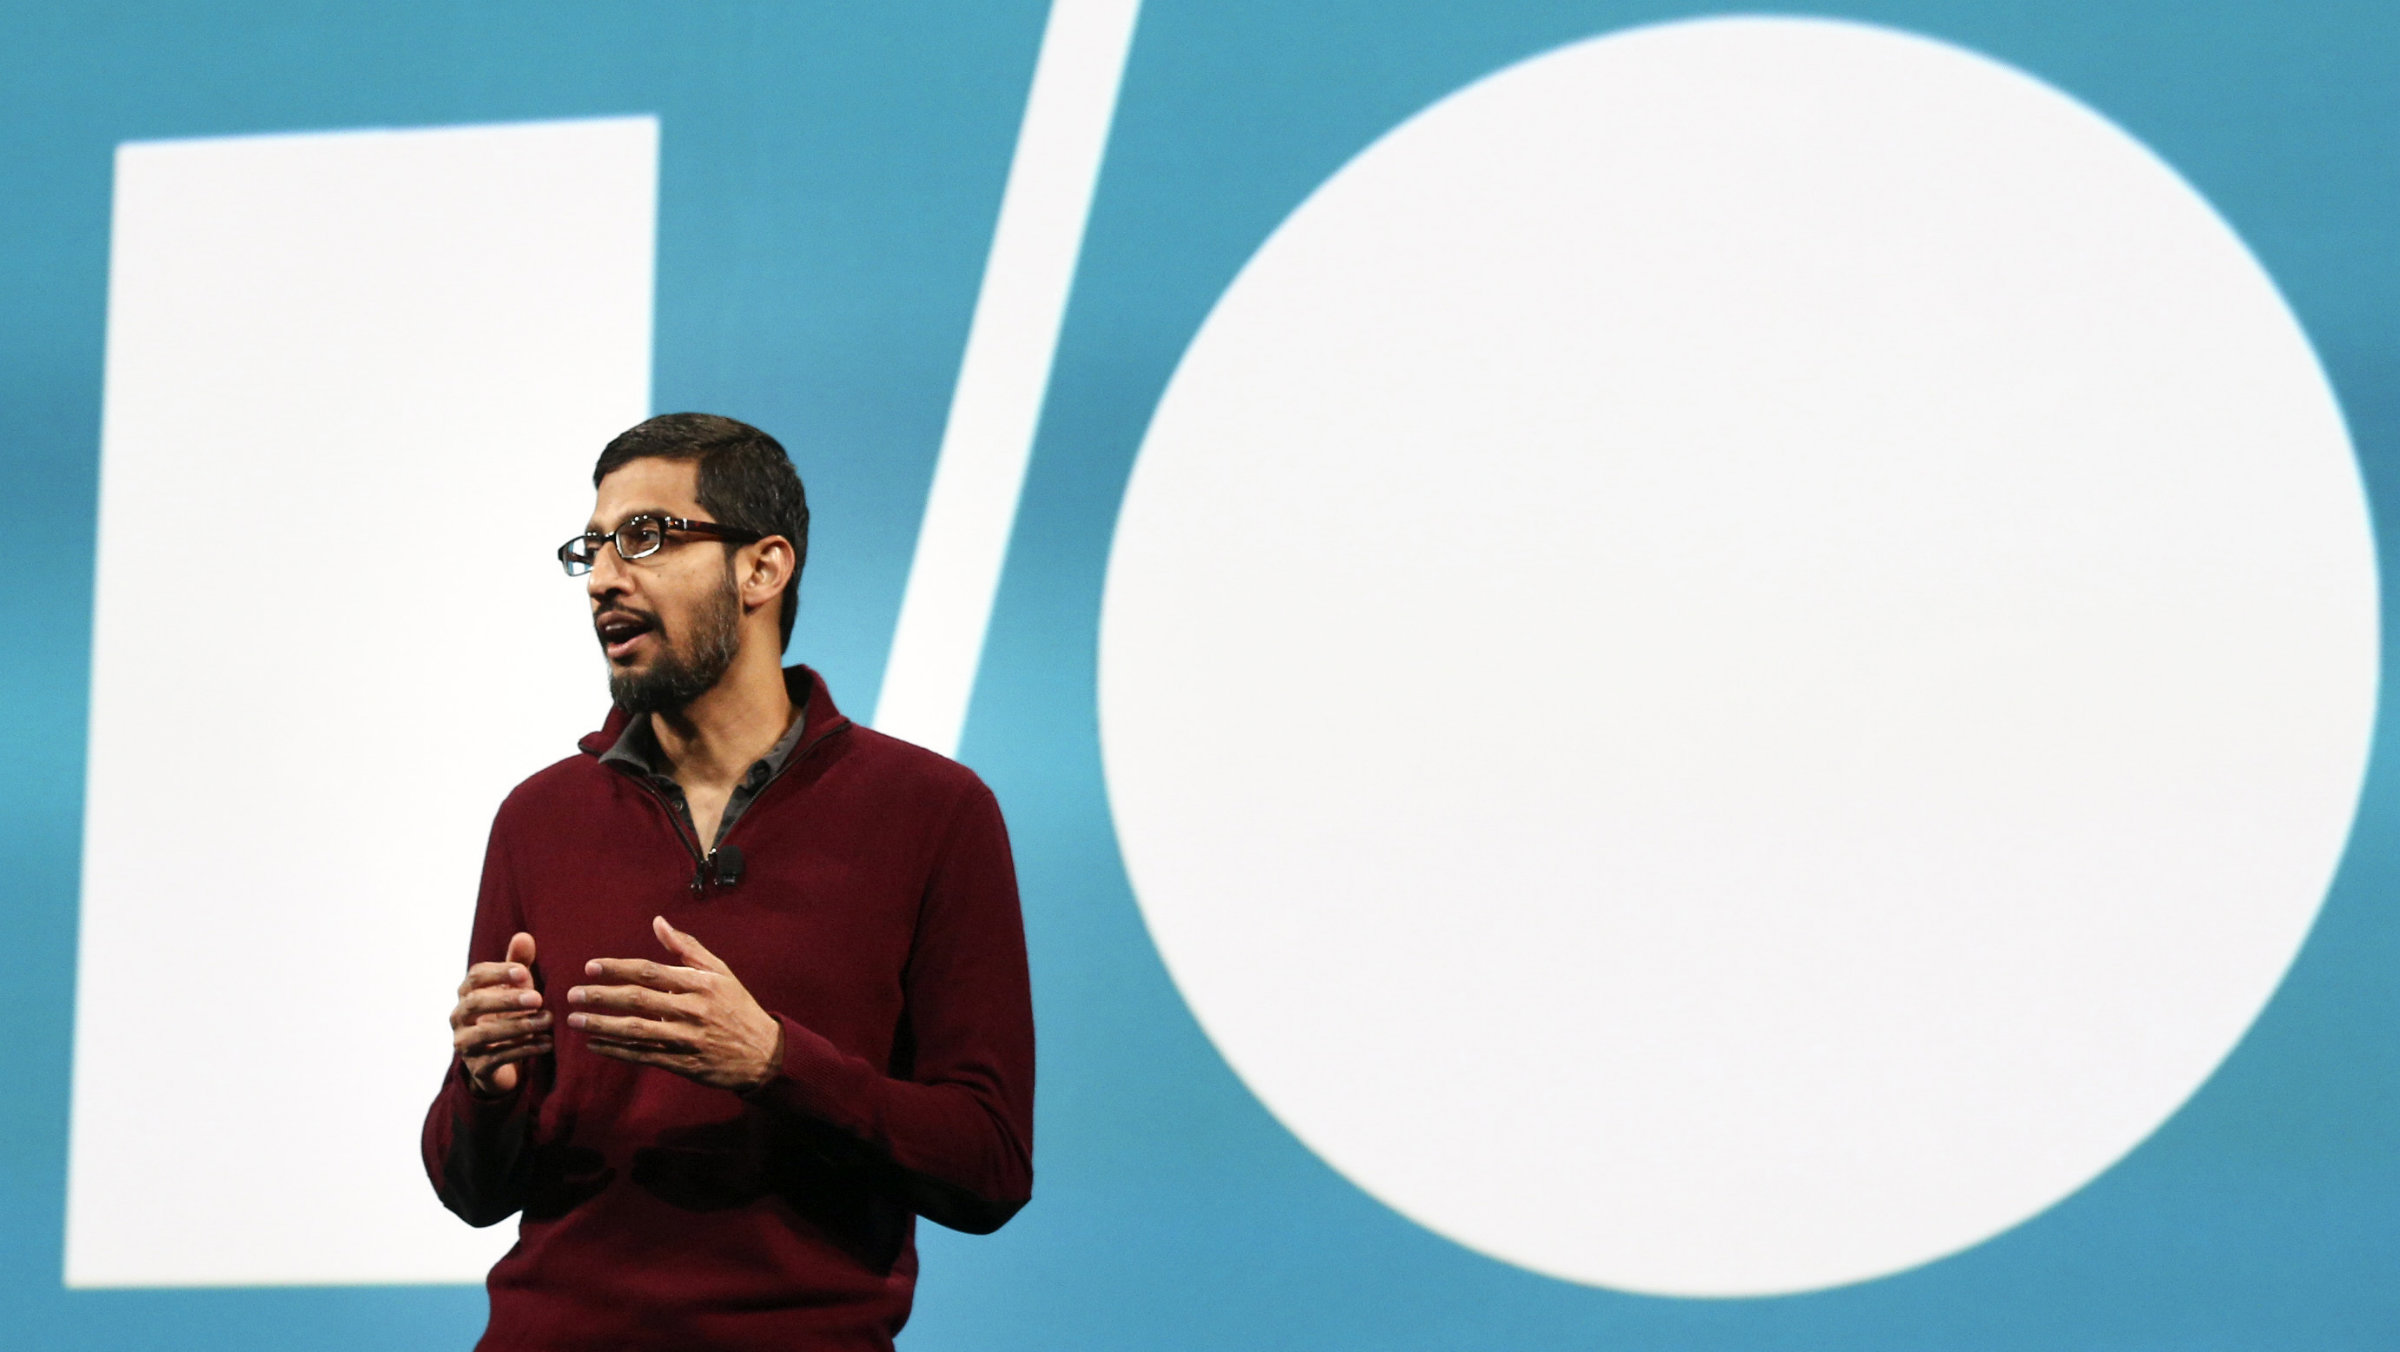 Sundar Pichai, Google's senior vice president of Android, Chrome and Apps, speaks during his keynote address at the Google I/O developers conference in San Francisco.